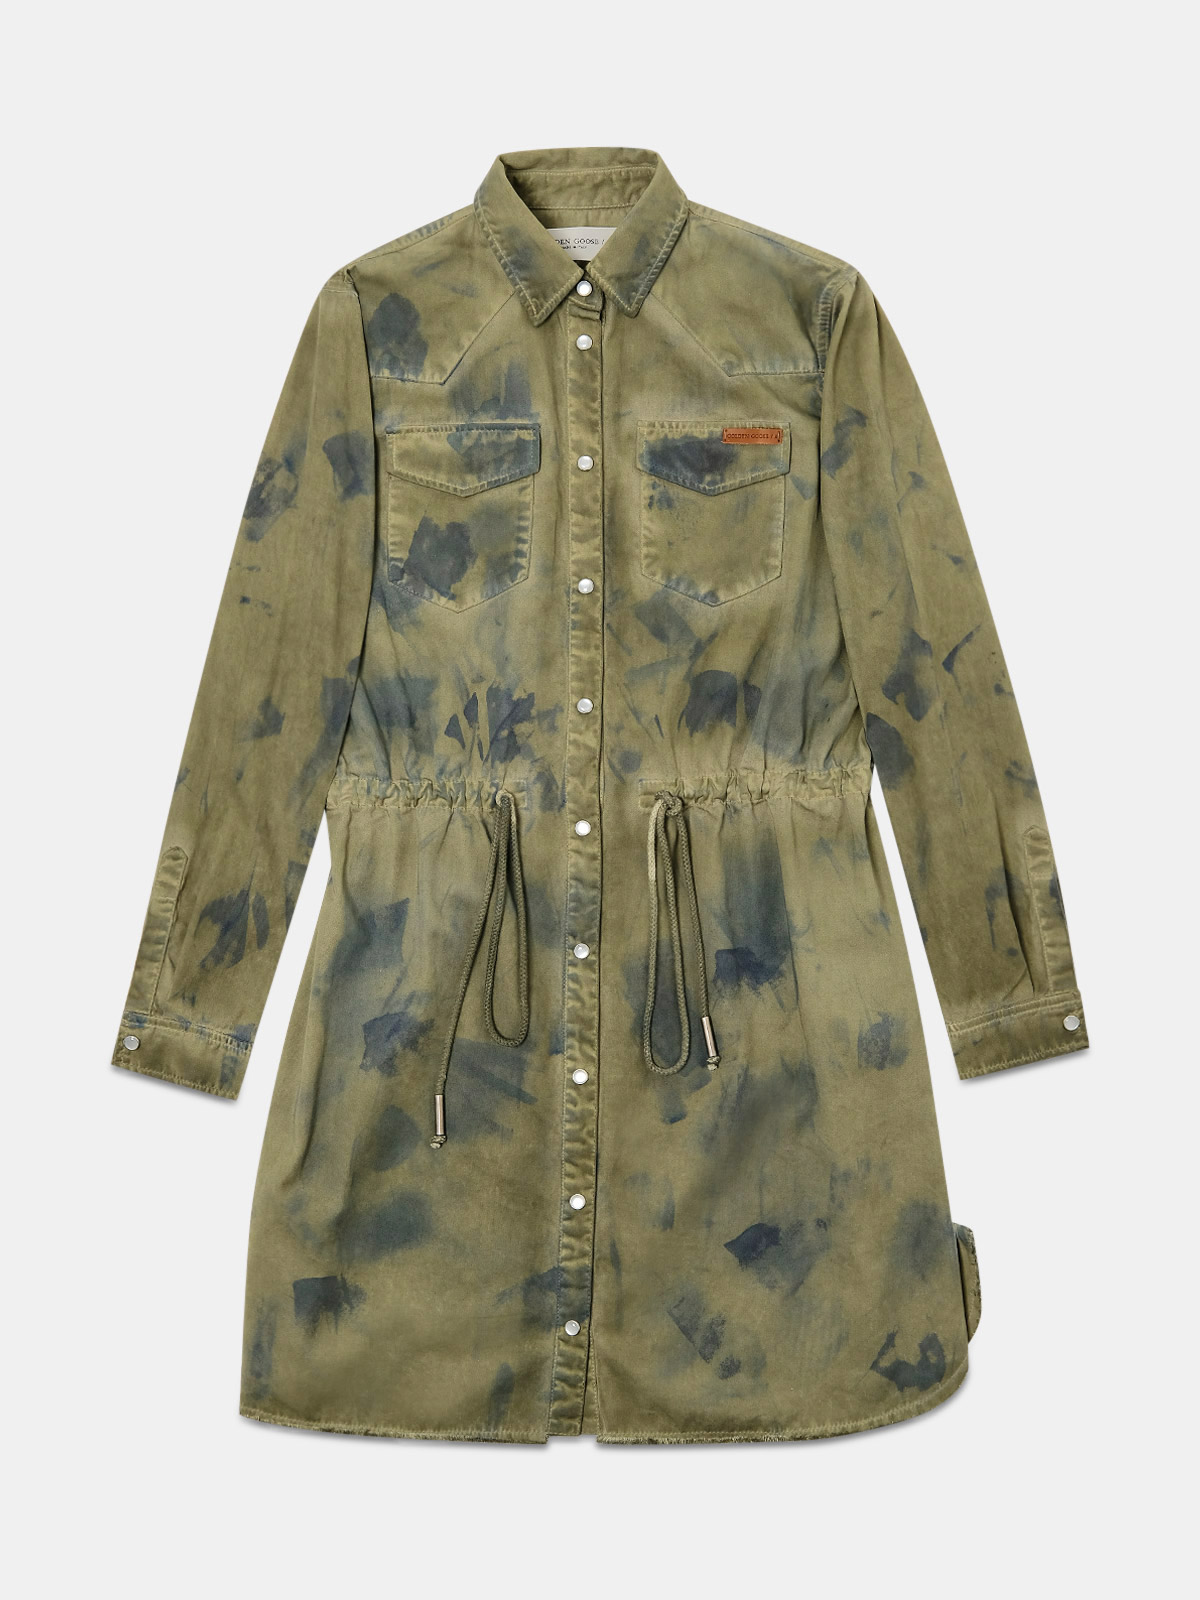 Golden Goose - Asia dress in military green bull denim for a vintage look in